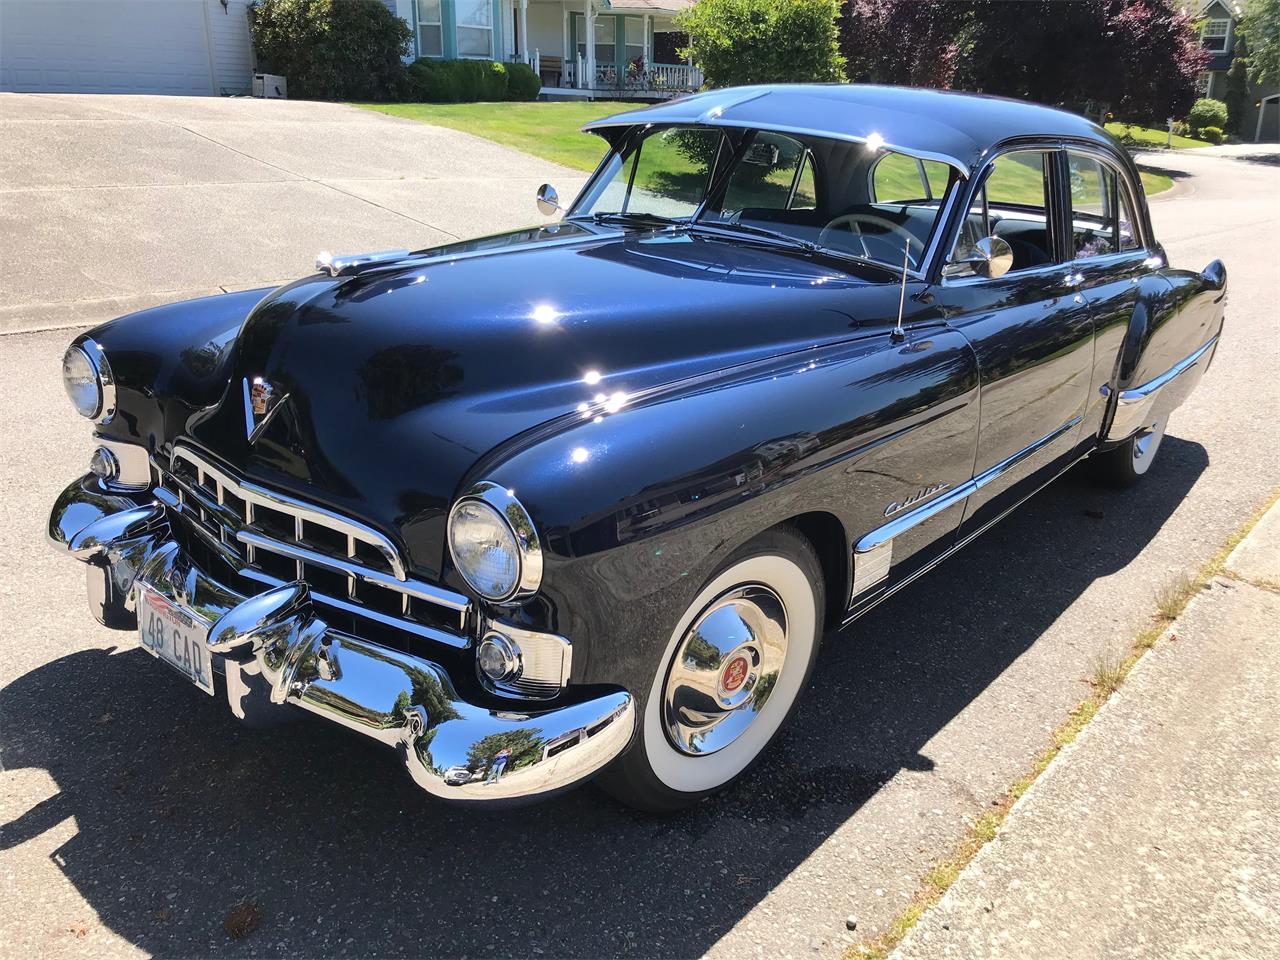 For Sale: 1948 Cadillac 4-Dr Sedan in Duvall, Washington